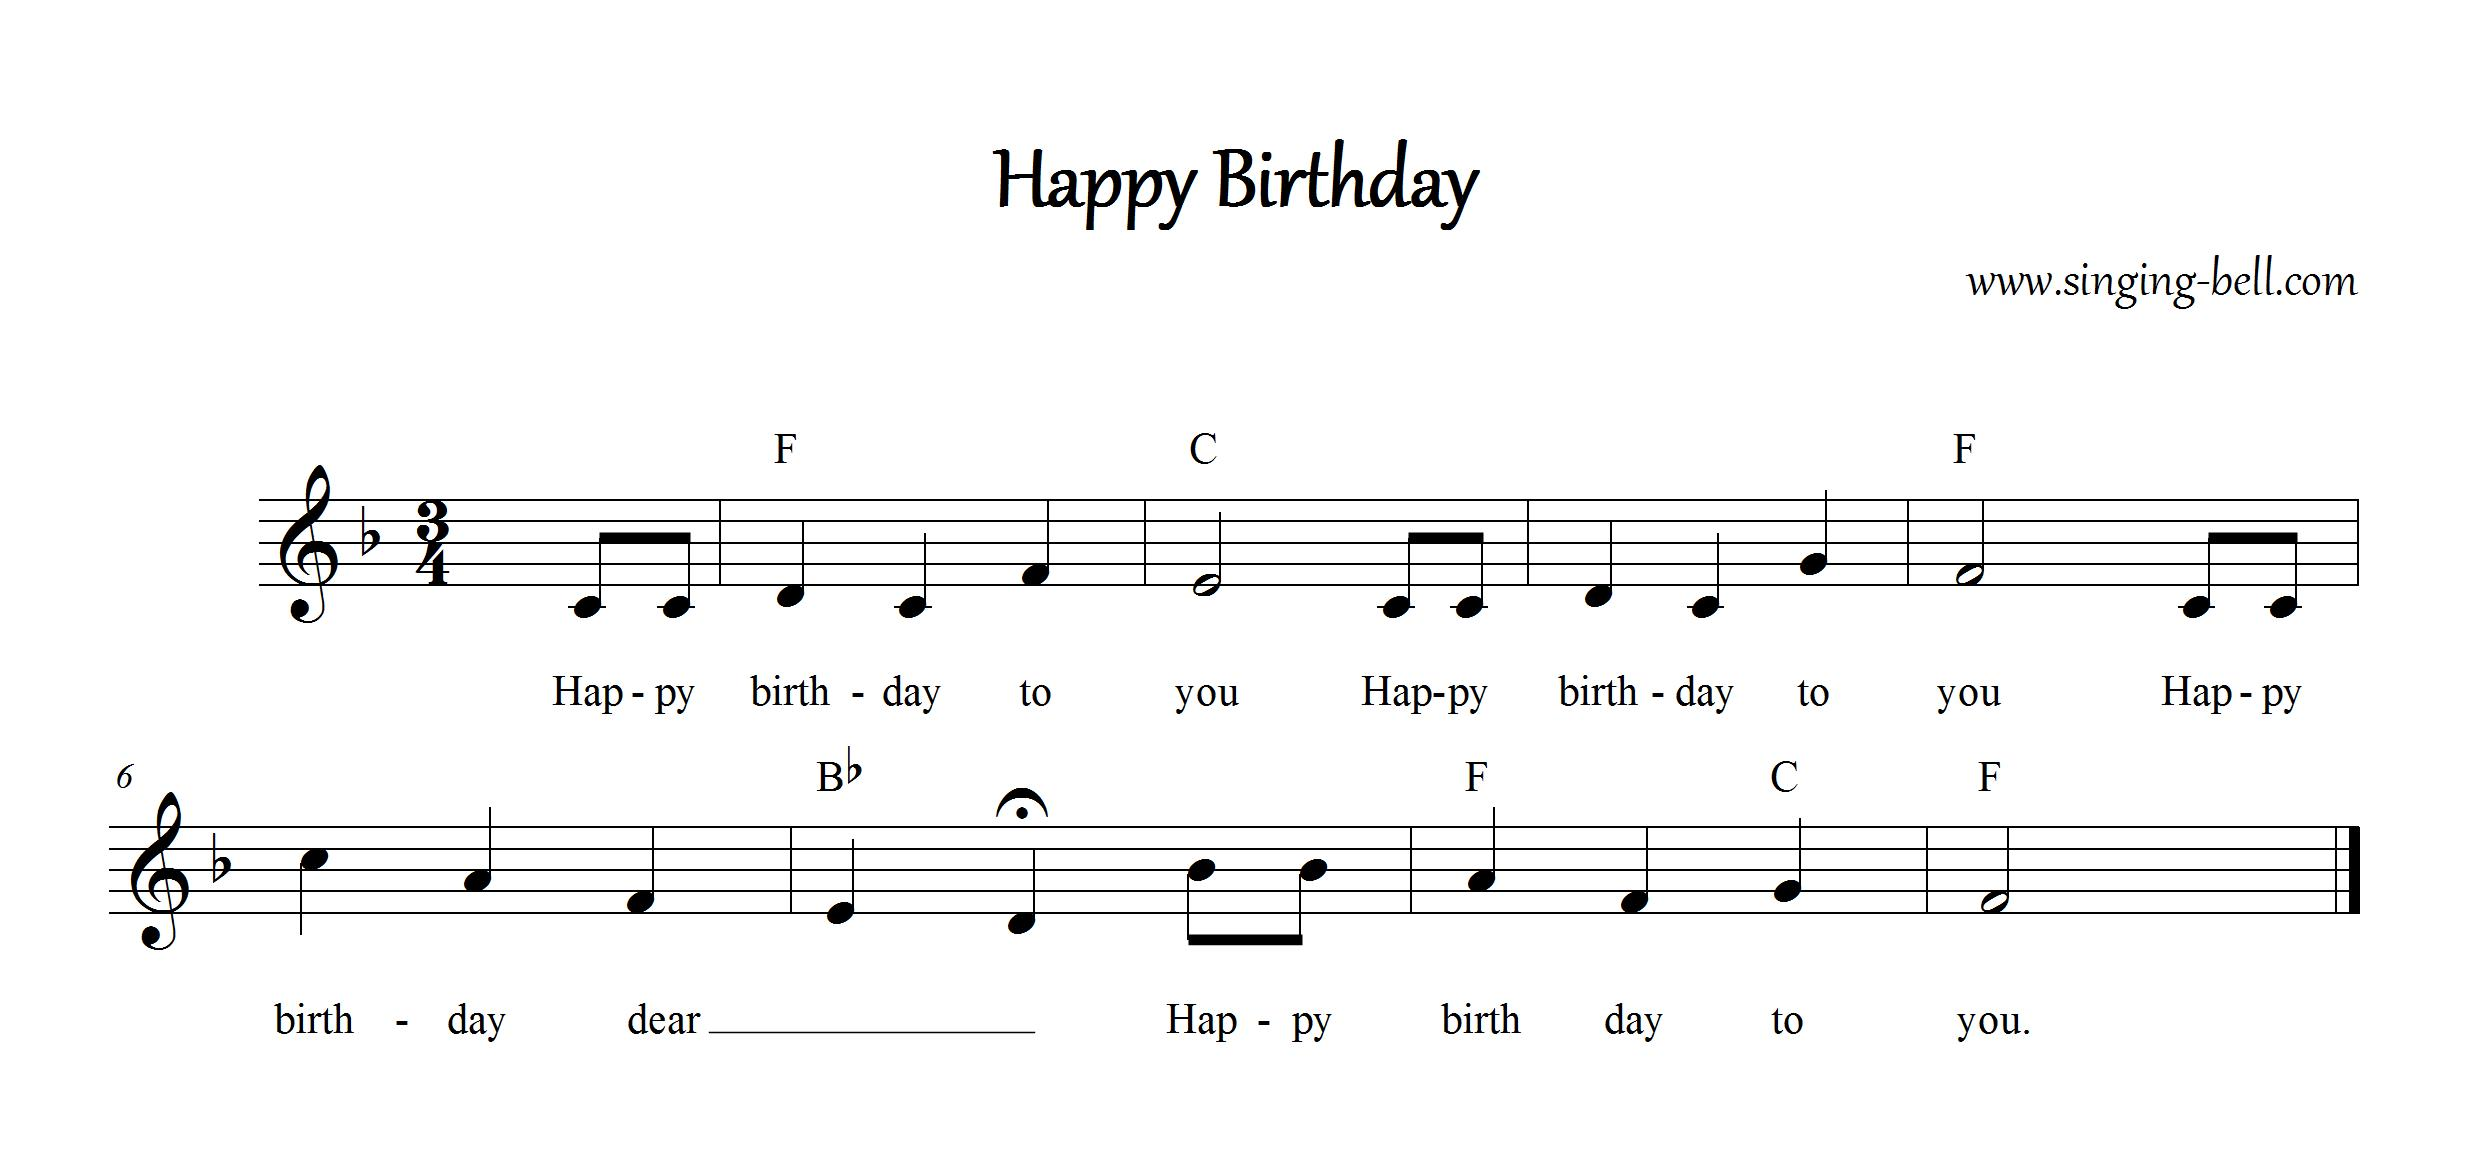 happy birthday pdf ; Happy-Birthday_F_Singing-Bell